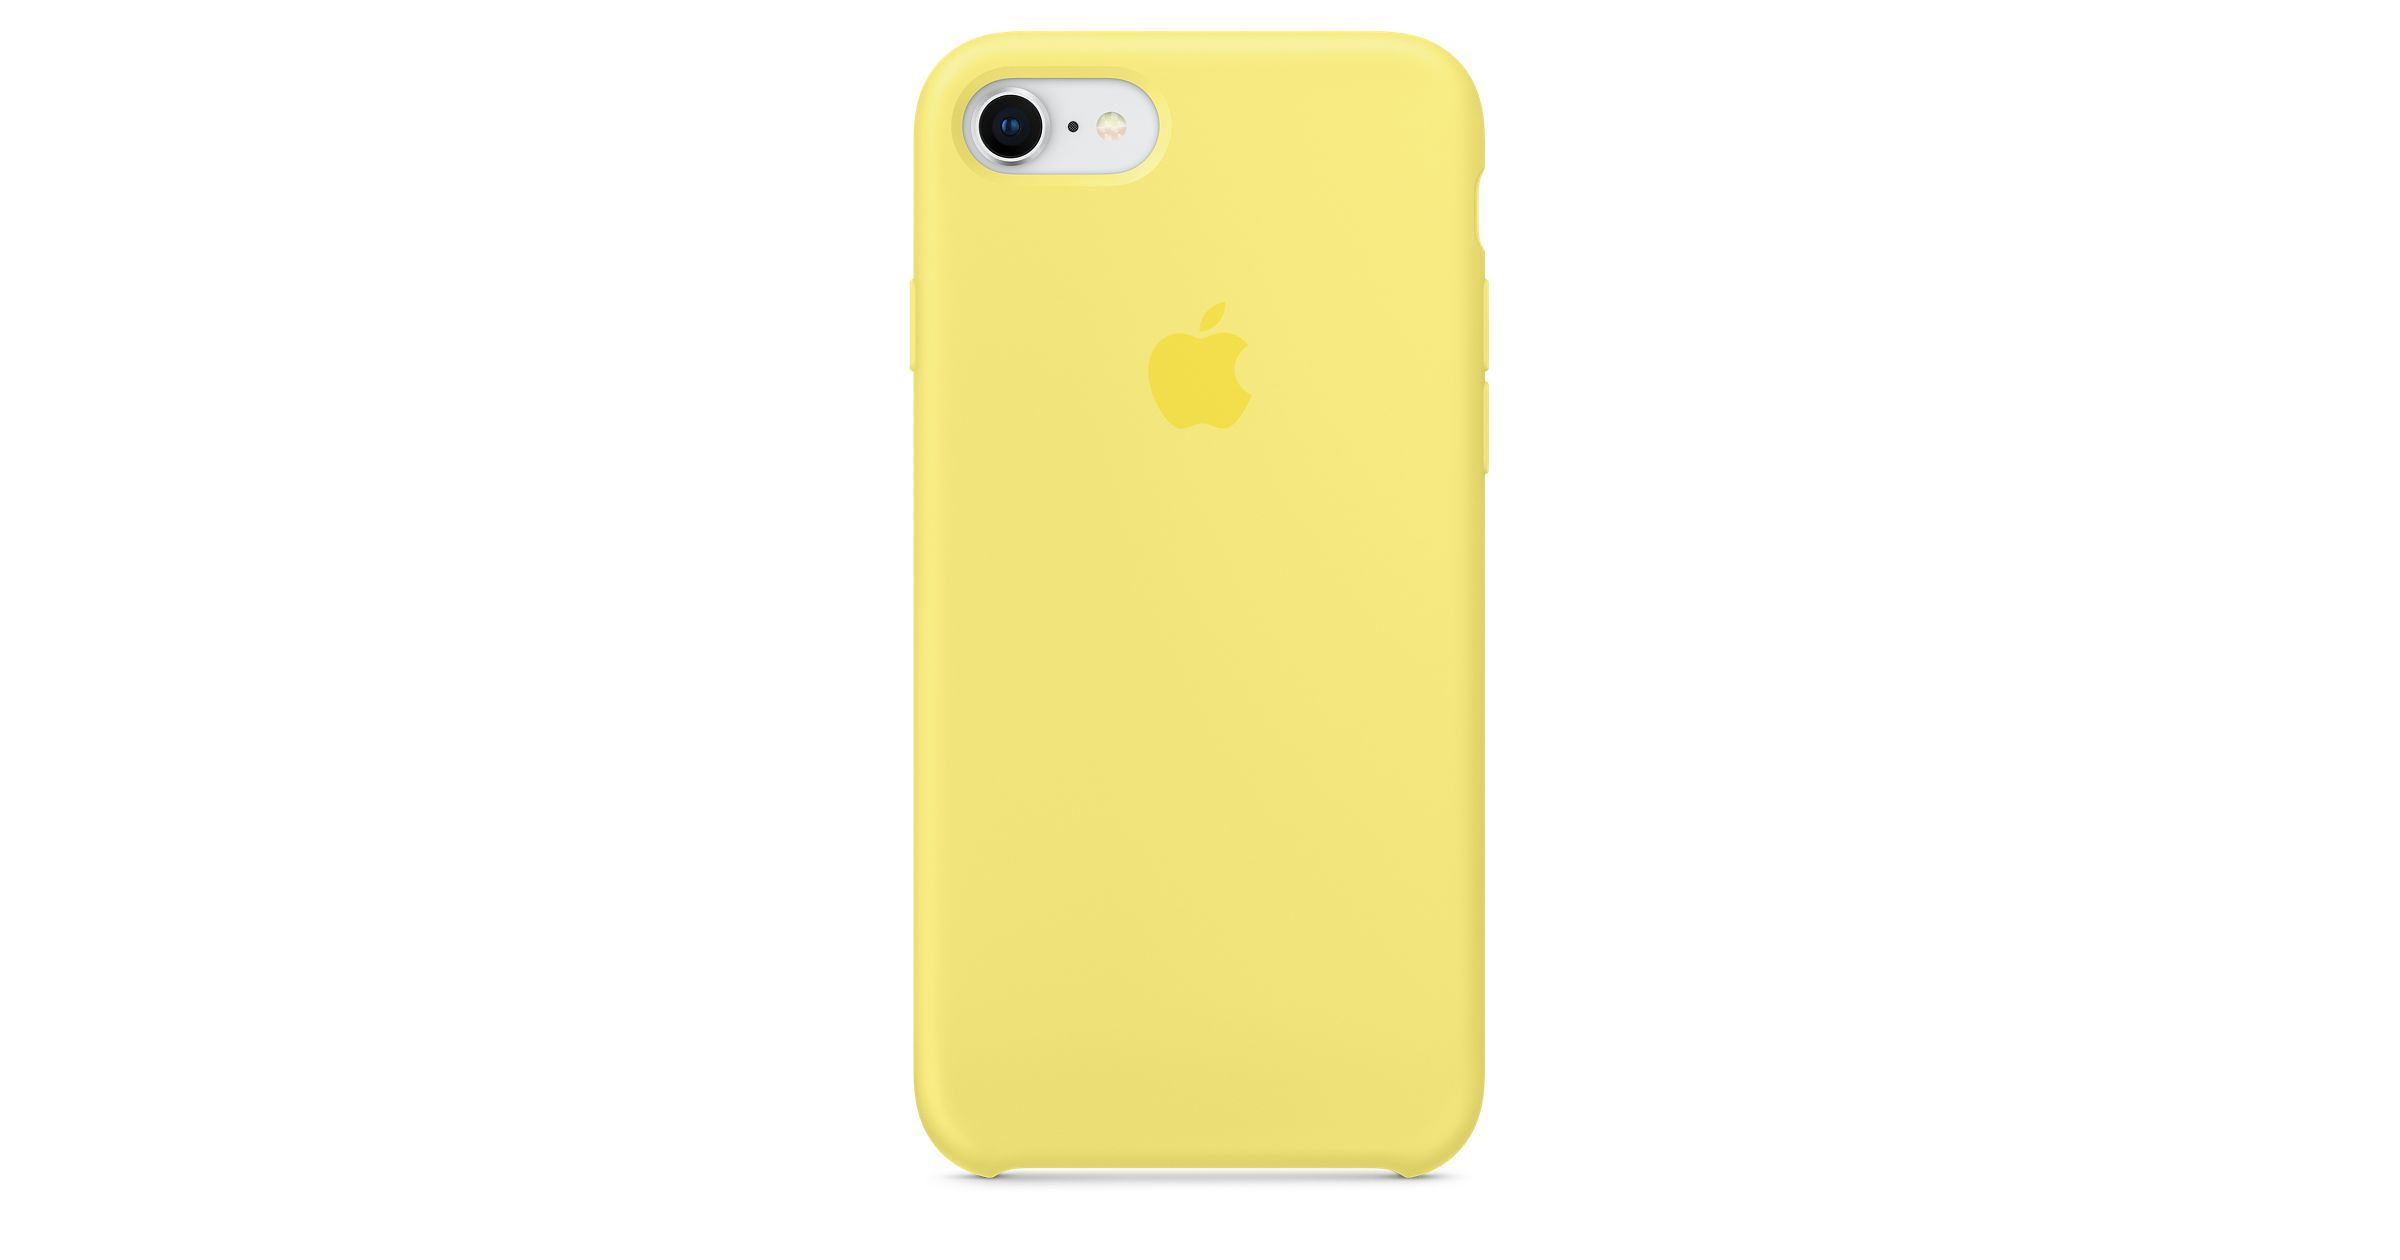 competitive price 01c75 cc2ca iPhone 8 / 7 Silicone Case - Black in 2019 | Yellow | Iphone phone ...